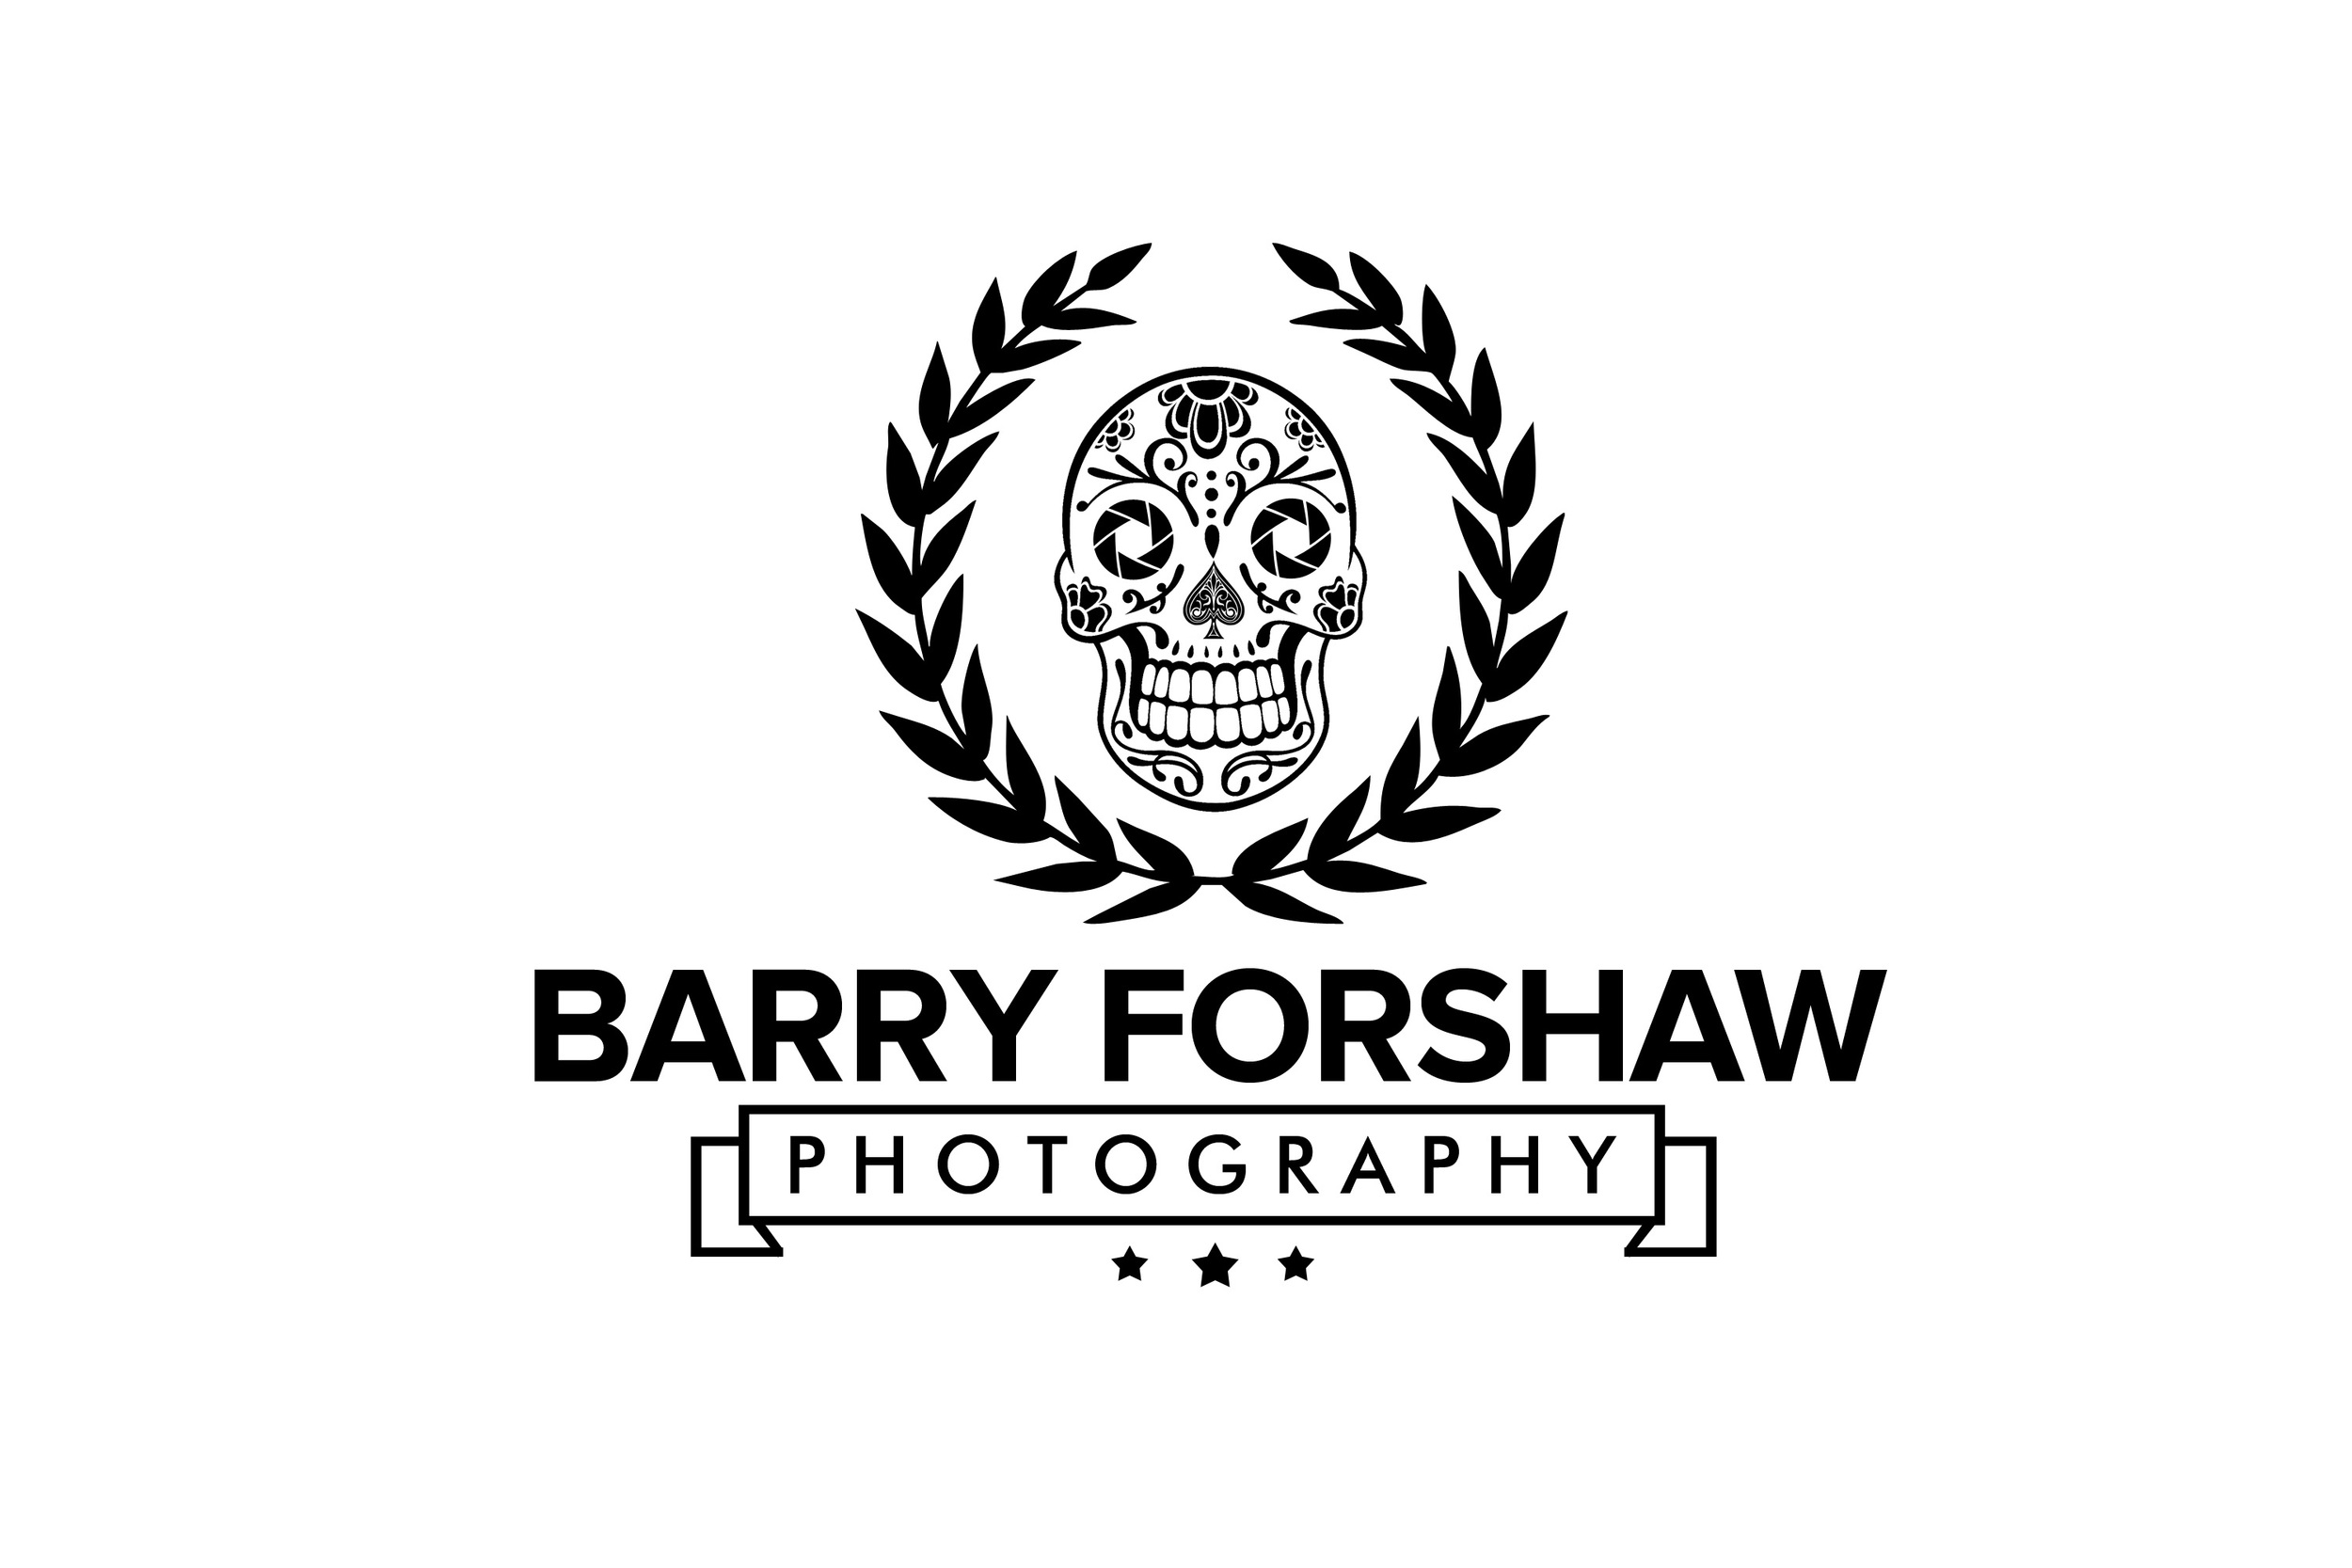 Barry Forshaw Photography New Logo